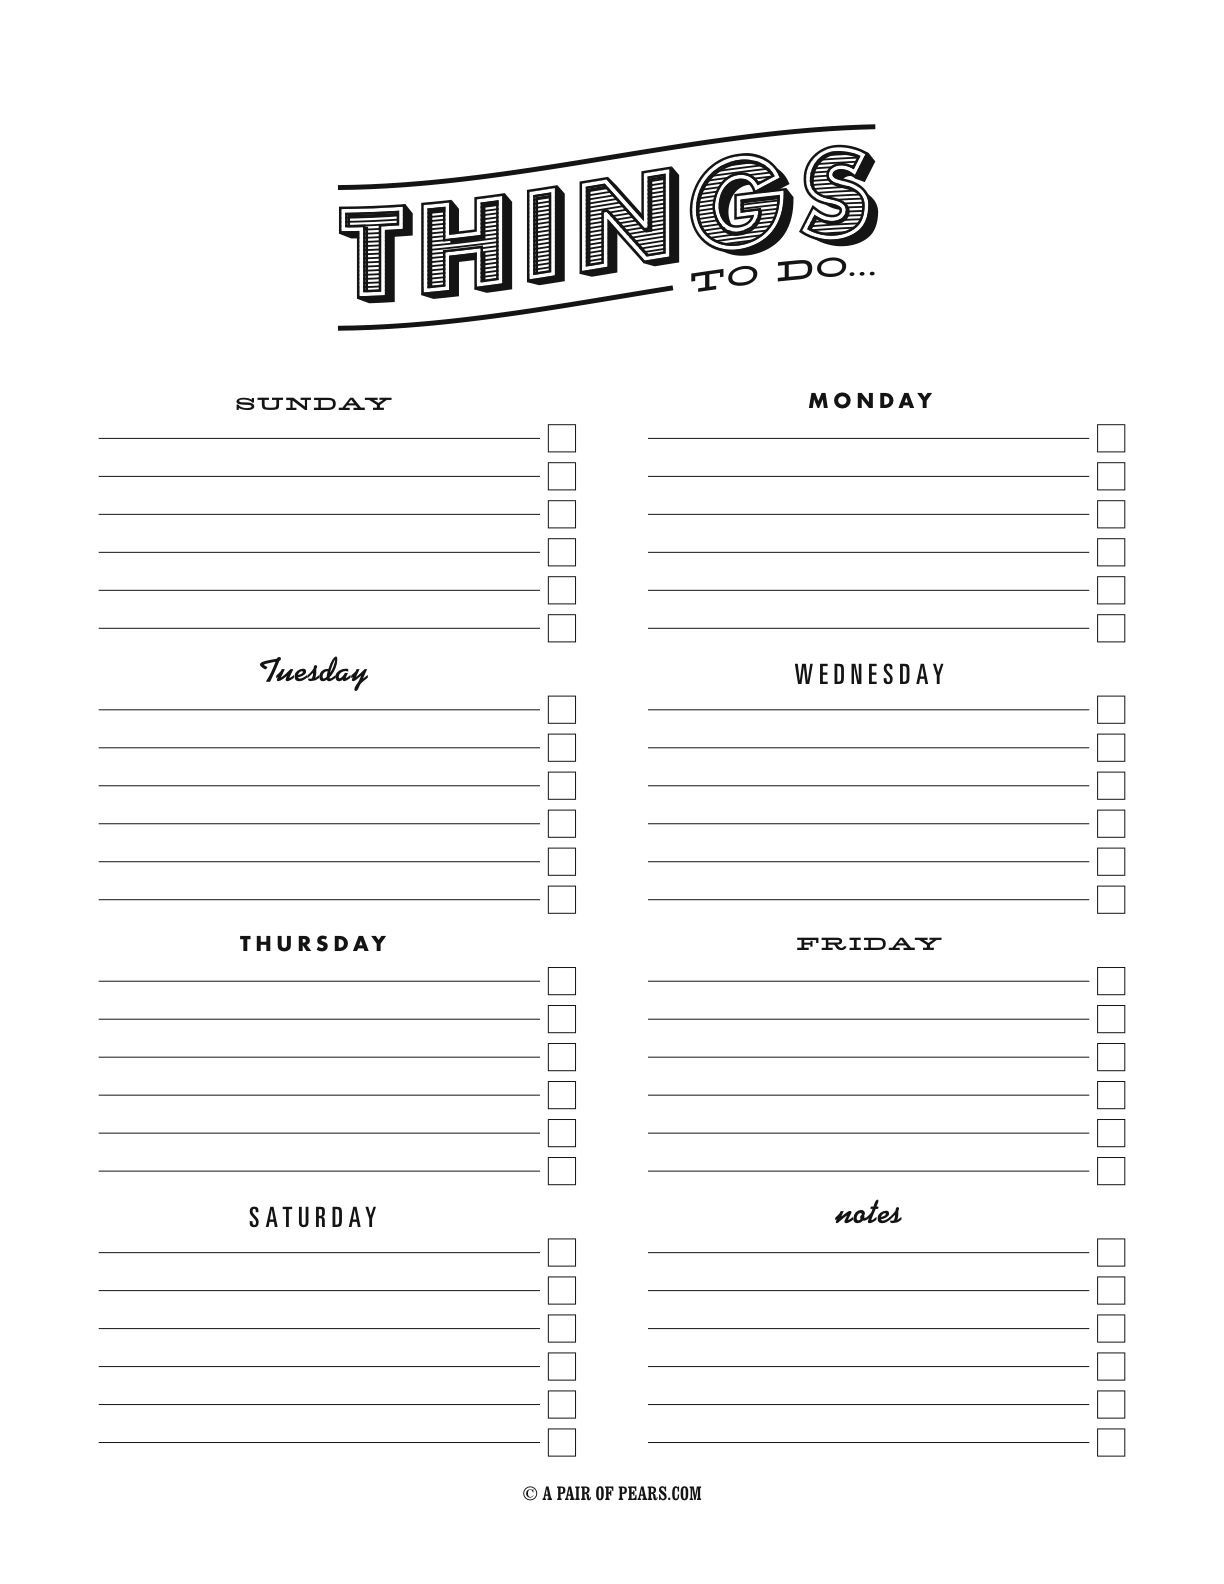 003 Astounding Thing To Do List Template Design Full